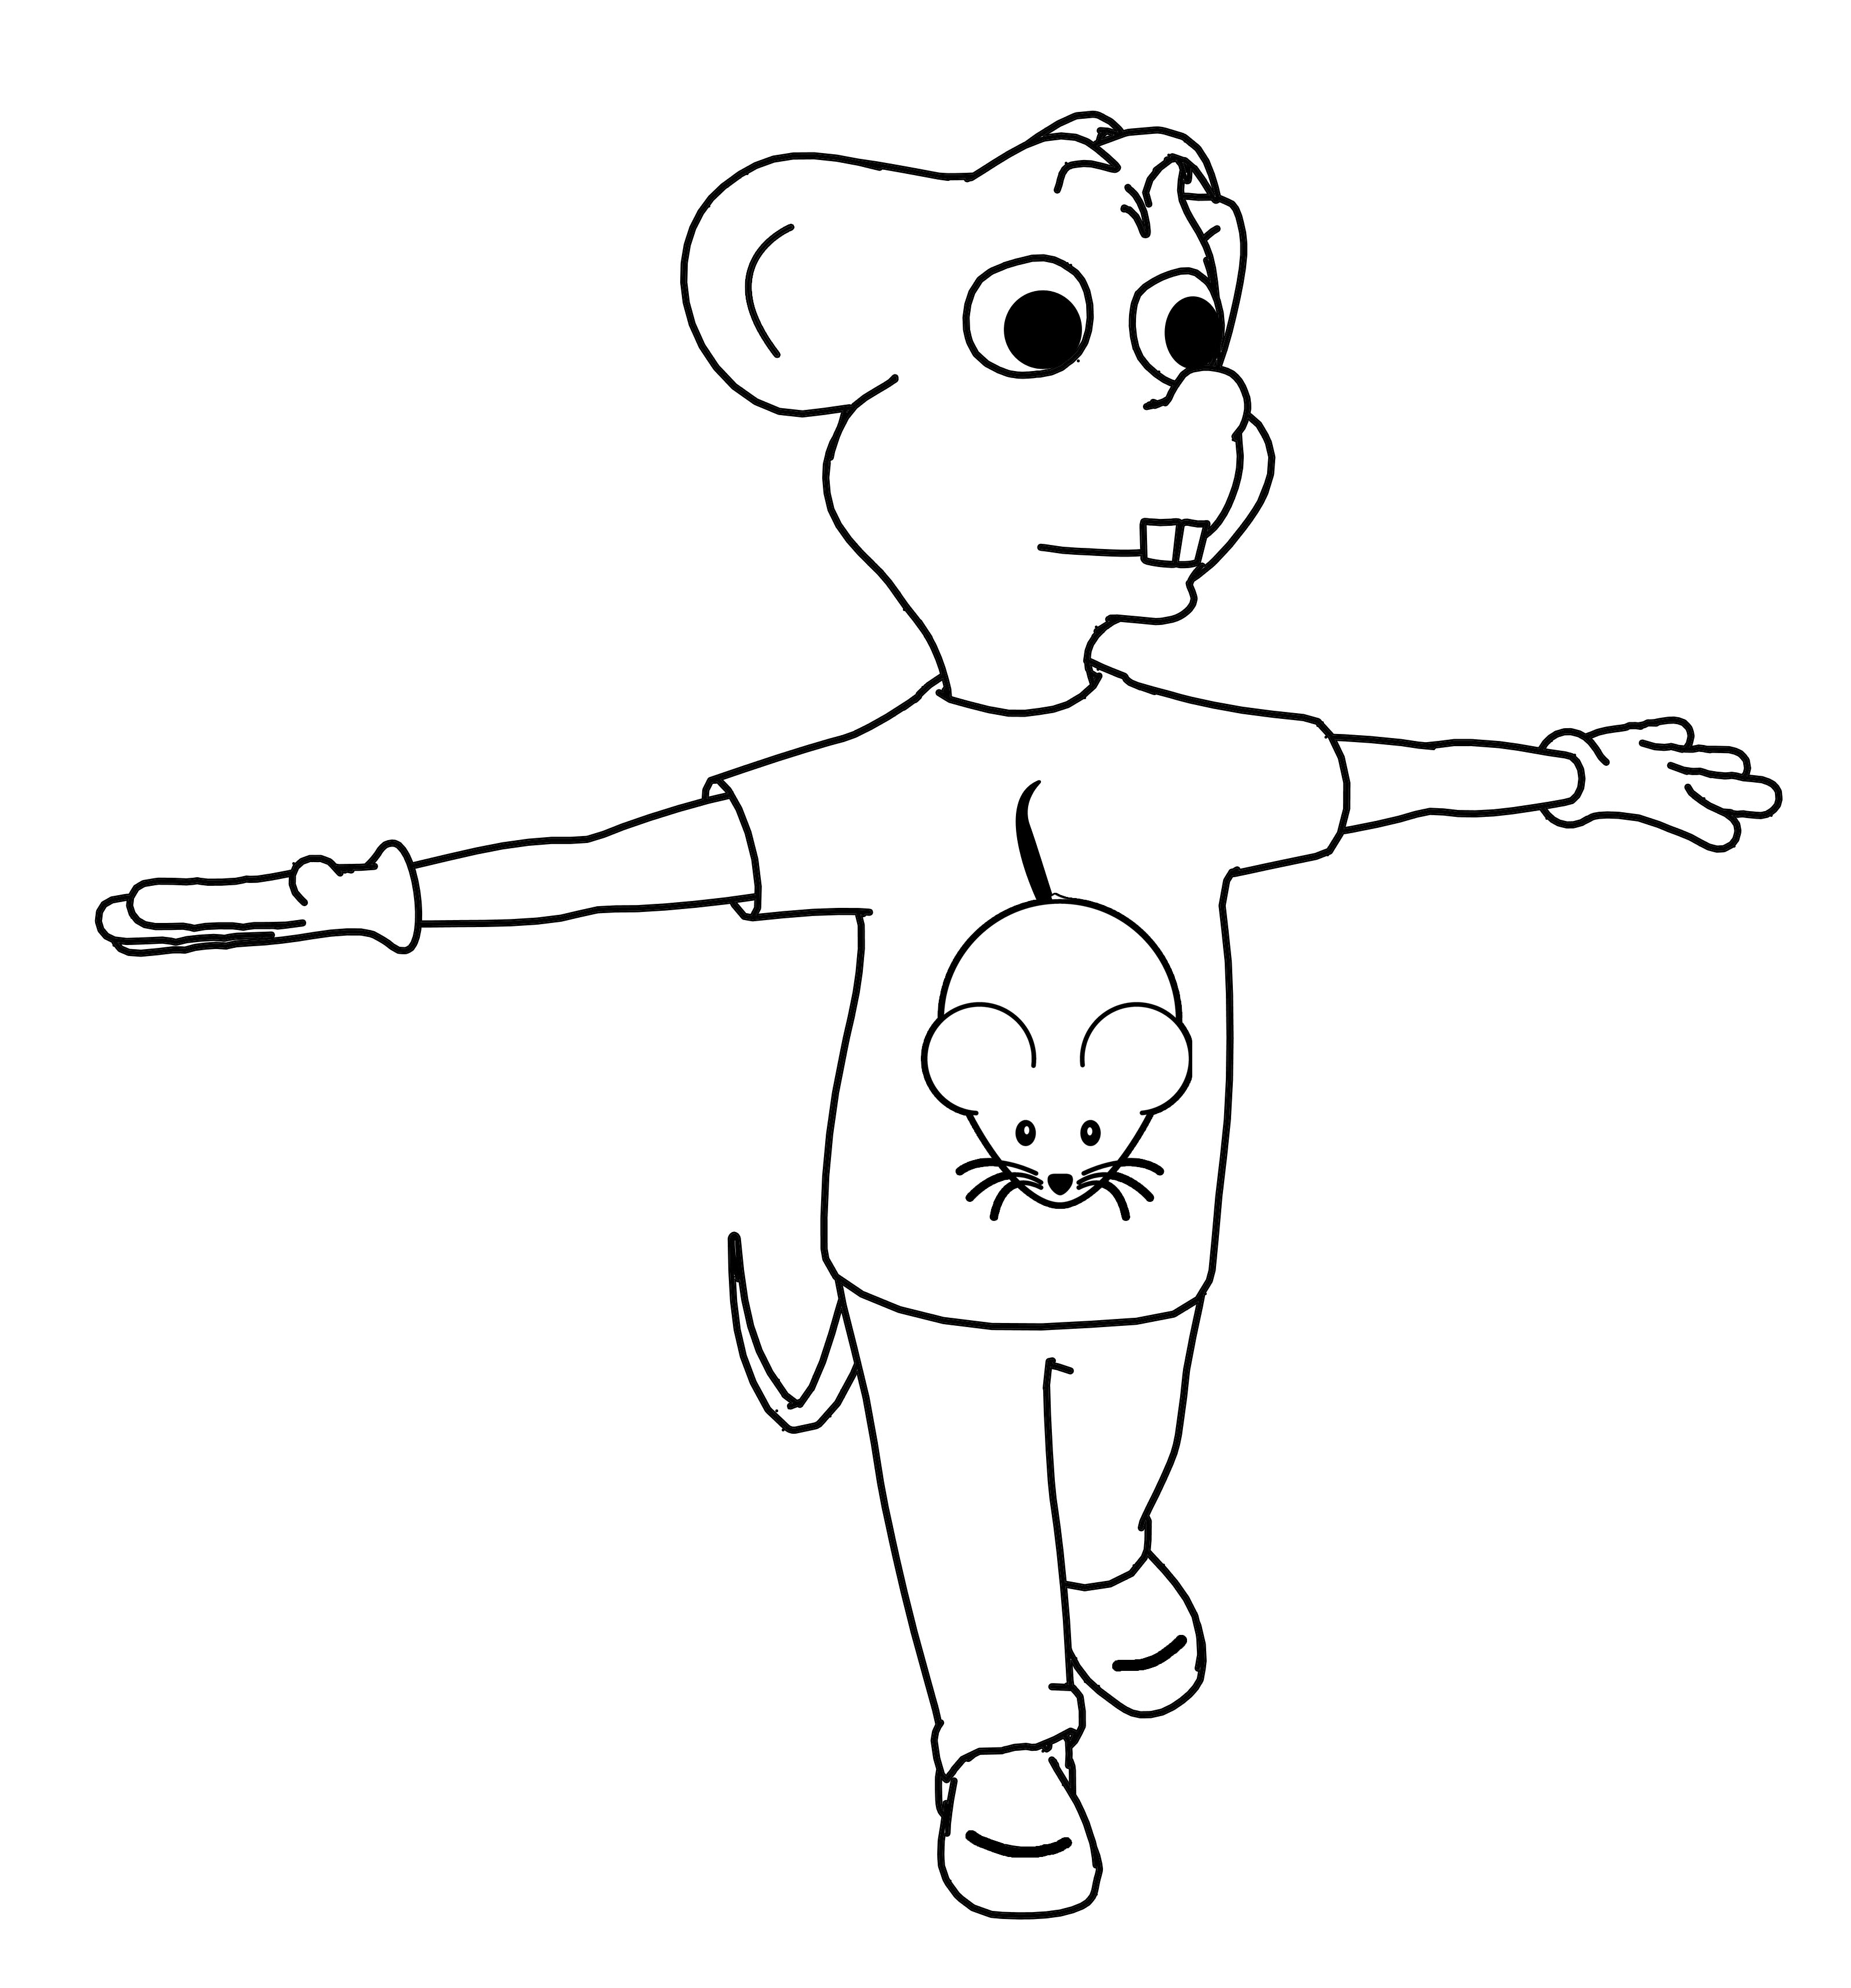 Mouse Toon Coloring Page